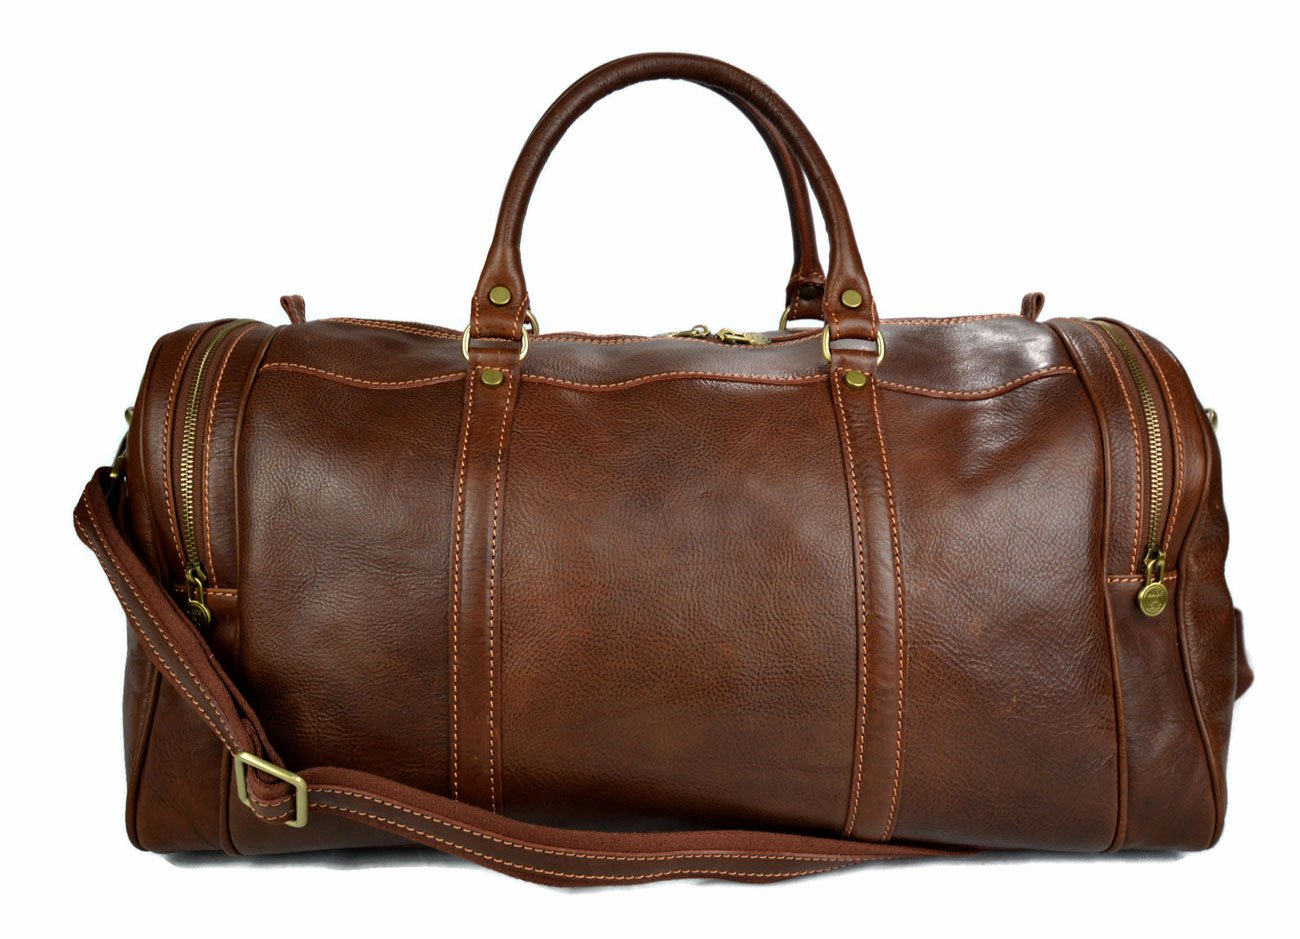 Mens leather duffle bag light brown shoulder bag travel bag luggage weekender carryon cabin bag gym leather bag women's leather duffel